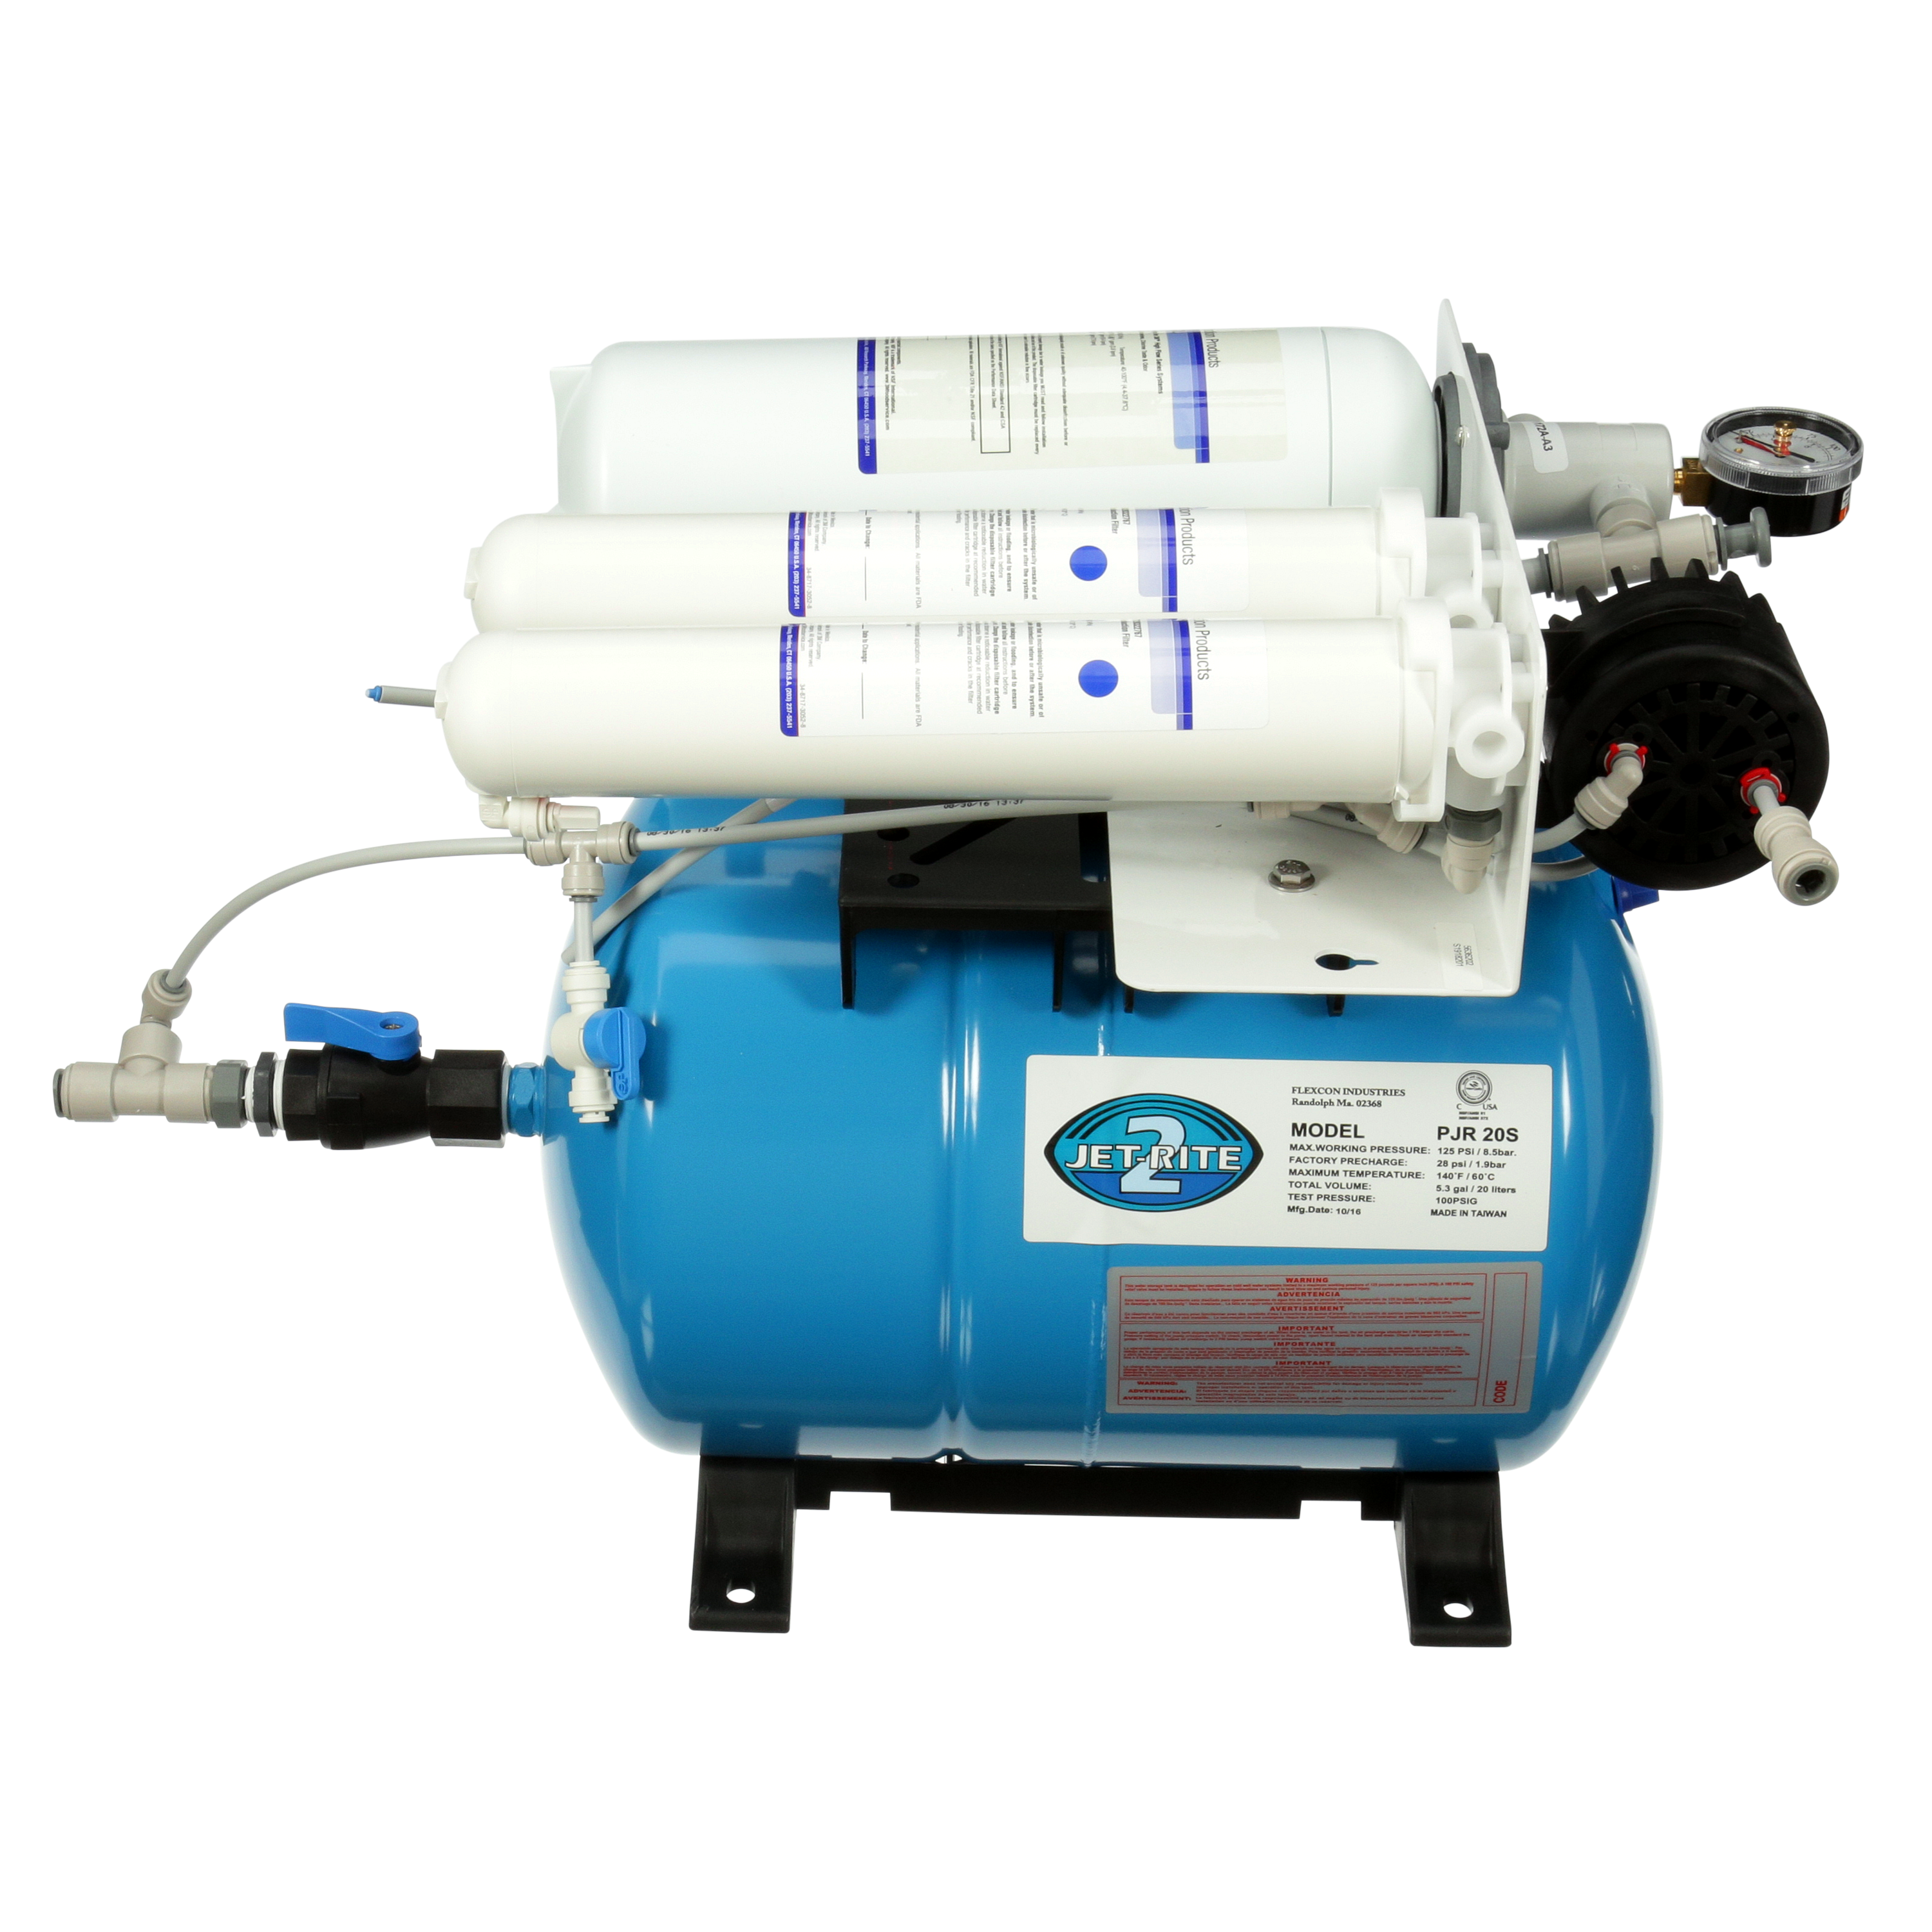 3M (SGLP200-CL) Reverse Osmosis Filtration System - 5636202